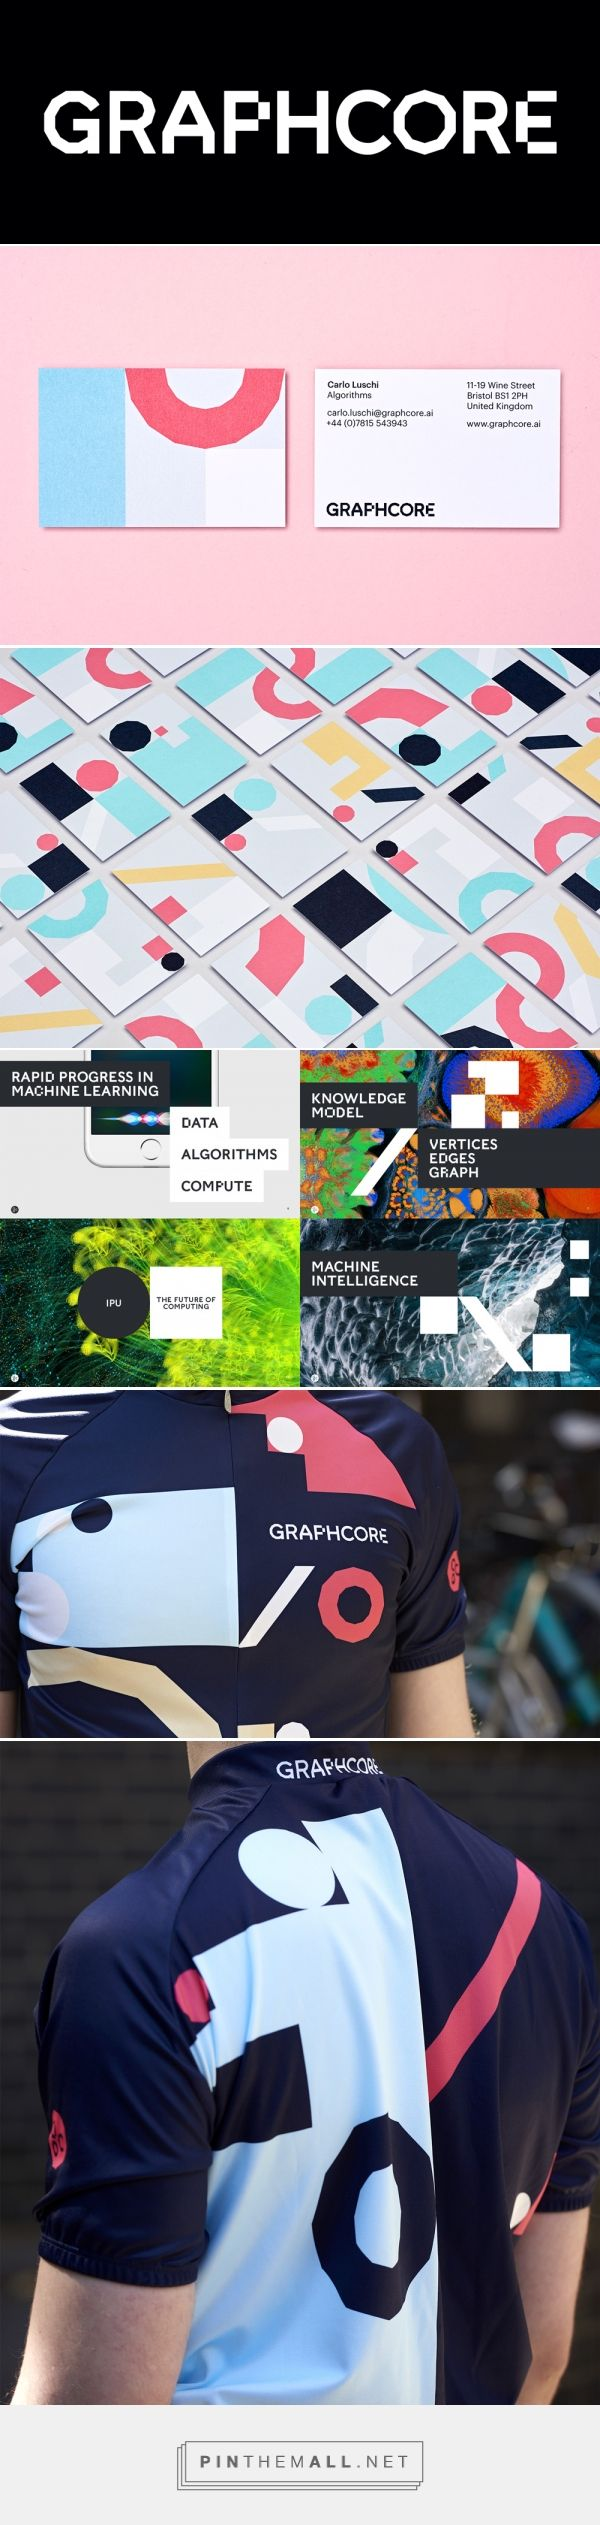 Brand New: New Logo and Identity for Graphcore by Pentagram... - a grouped images picture - Pin Them All